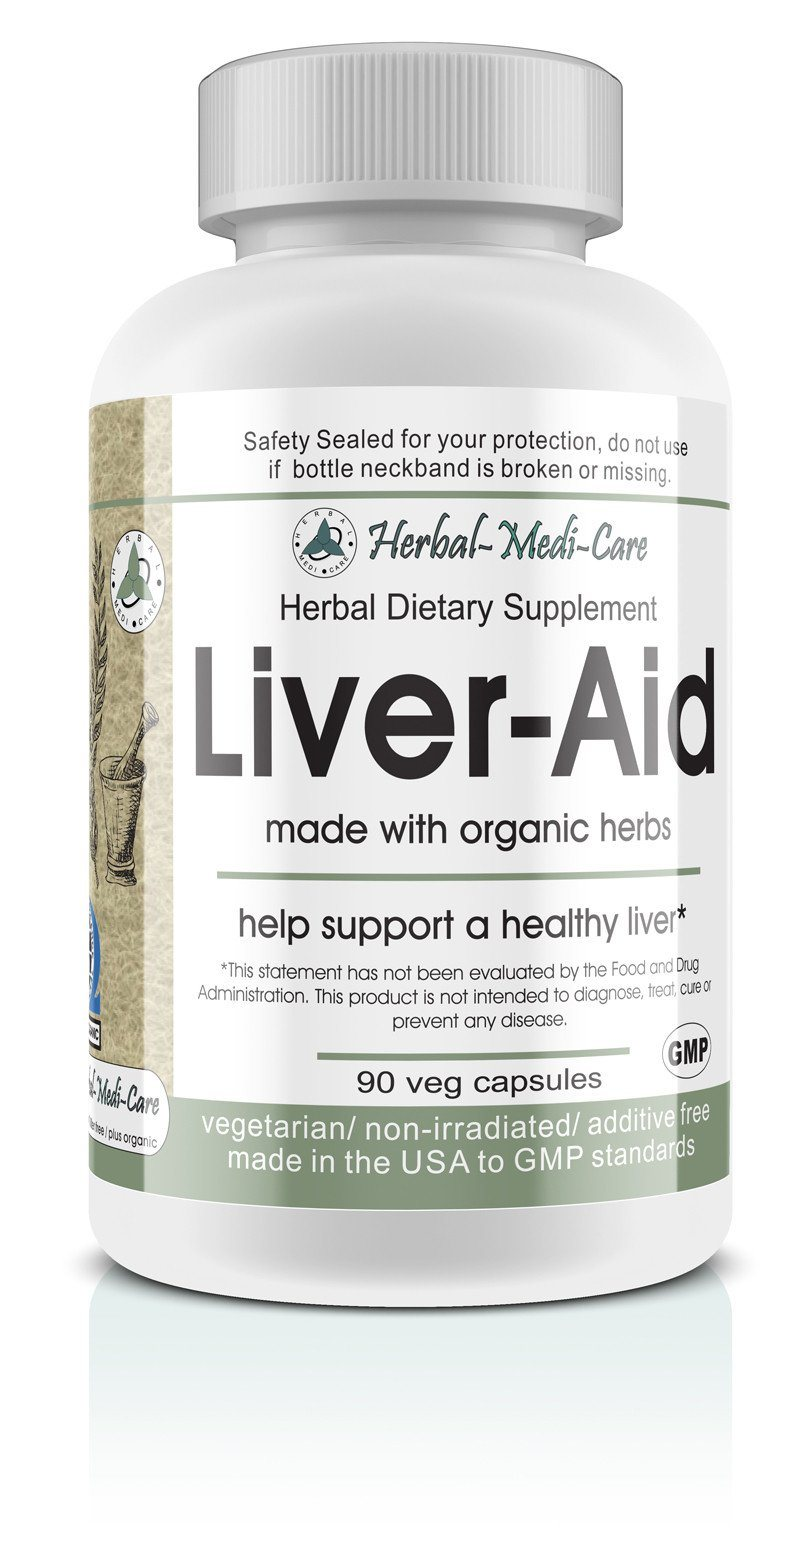 Herbal-Medi-Care Whole Food Liver-Aid Vegetarian Capsules; 90-Count, Made with Organic - Herbal-Medi-Care Whole Food Liver-Aid Vegetarian Capsules; 90-Count, Made with Organic - Herbal-Medi-Care Whole Food Liver-Aid Vegetarian Capsules; 90-Count, Made with Organic